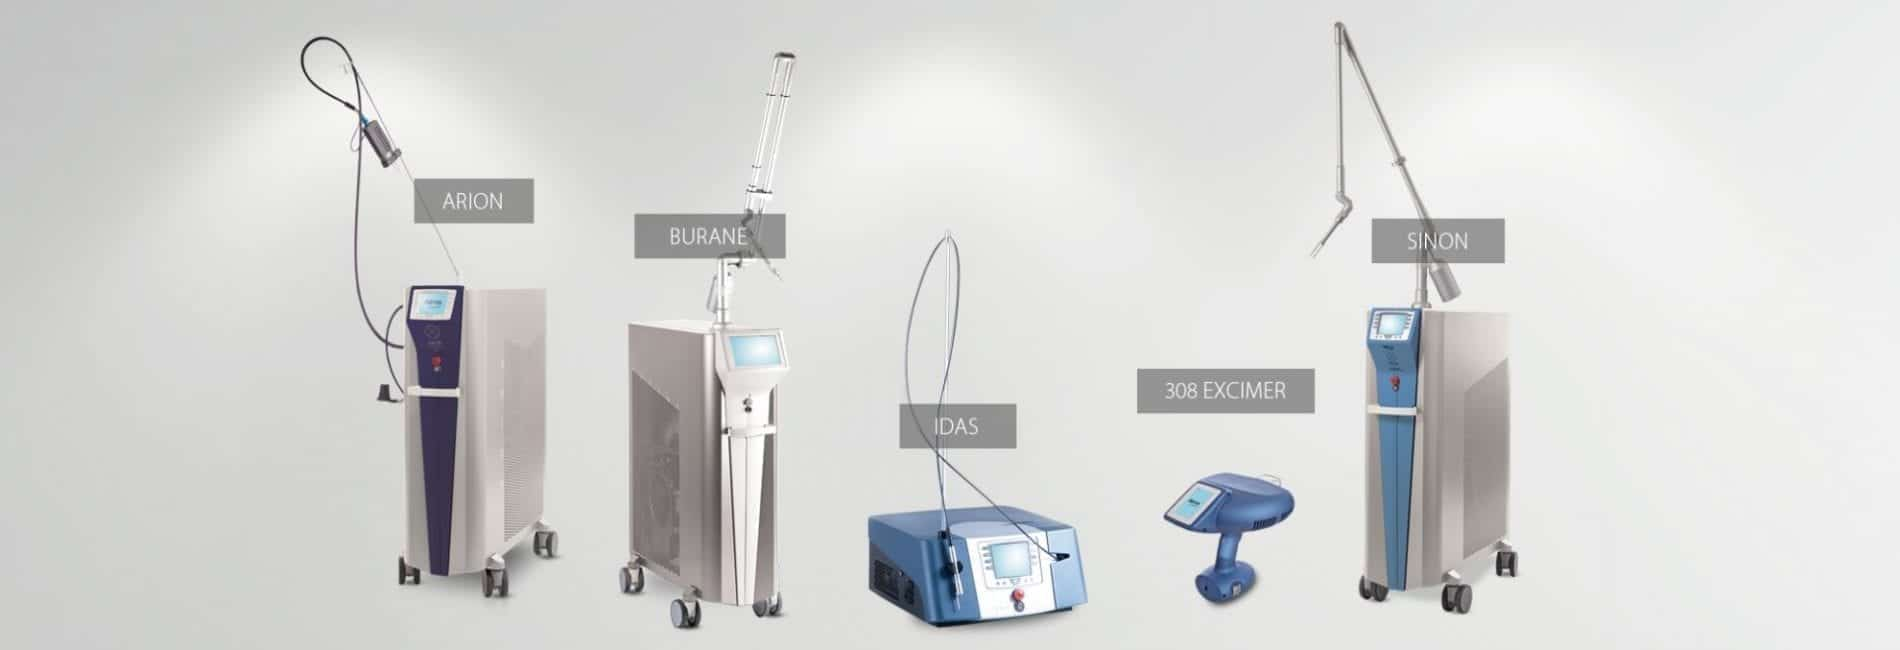 ... Lasers - Medical Laser - Aesthetic Laser Equipment from Alma Lasers